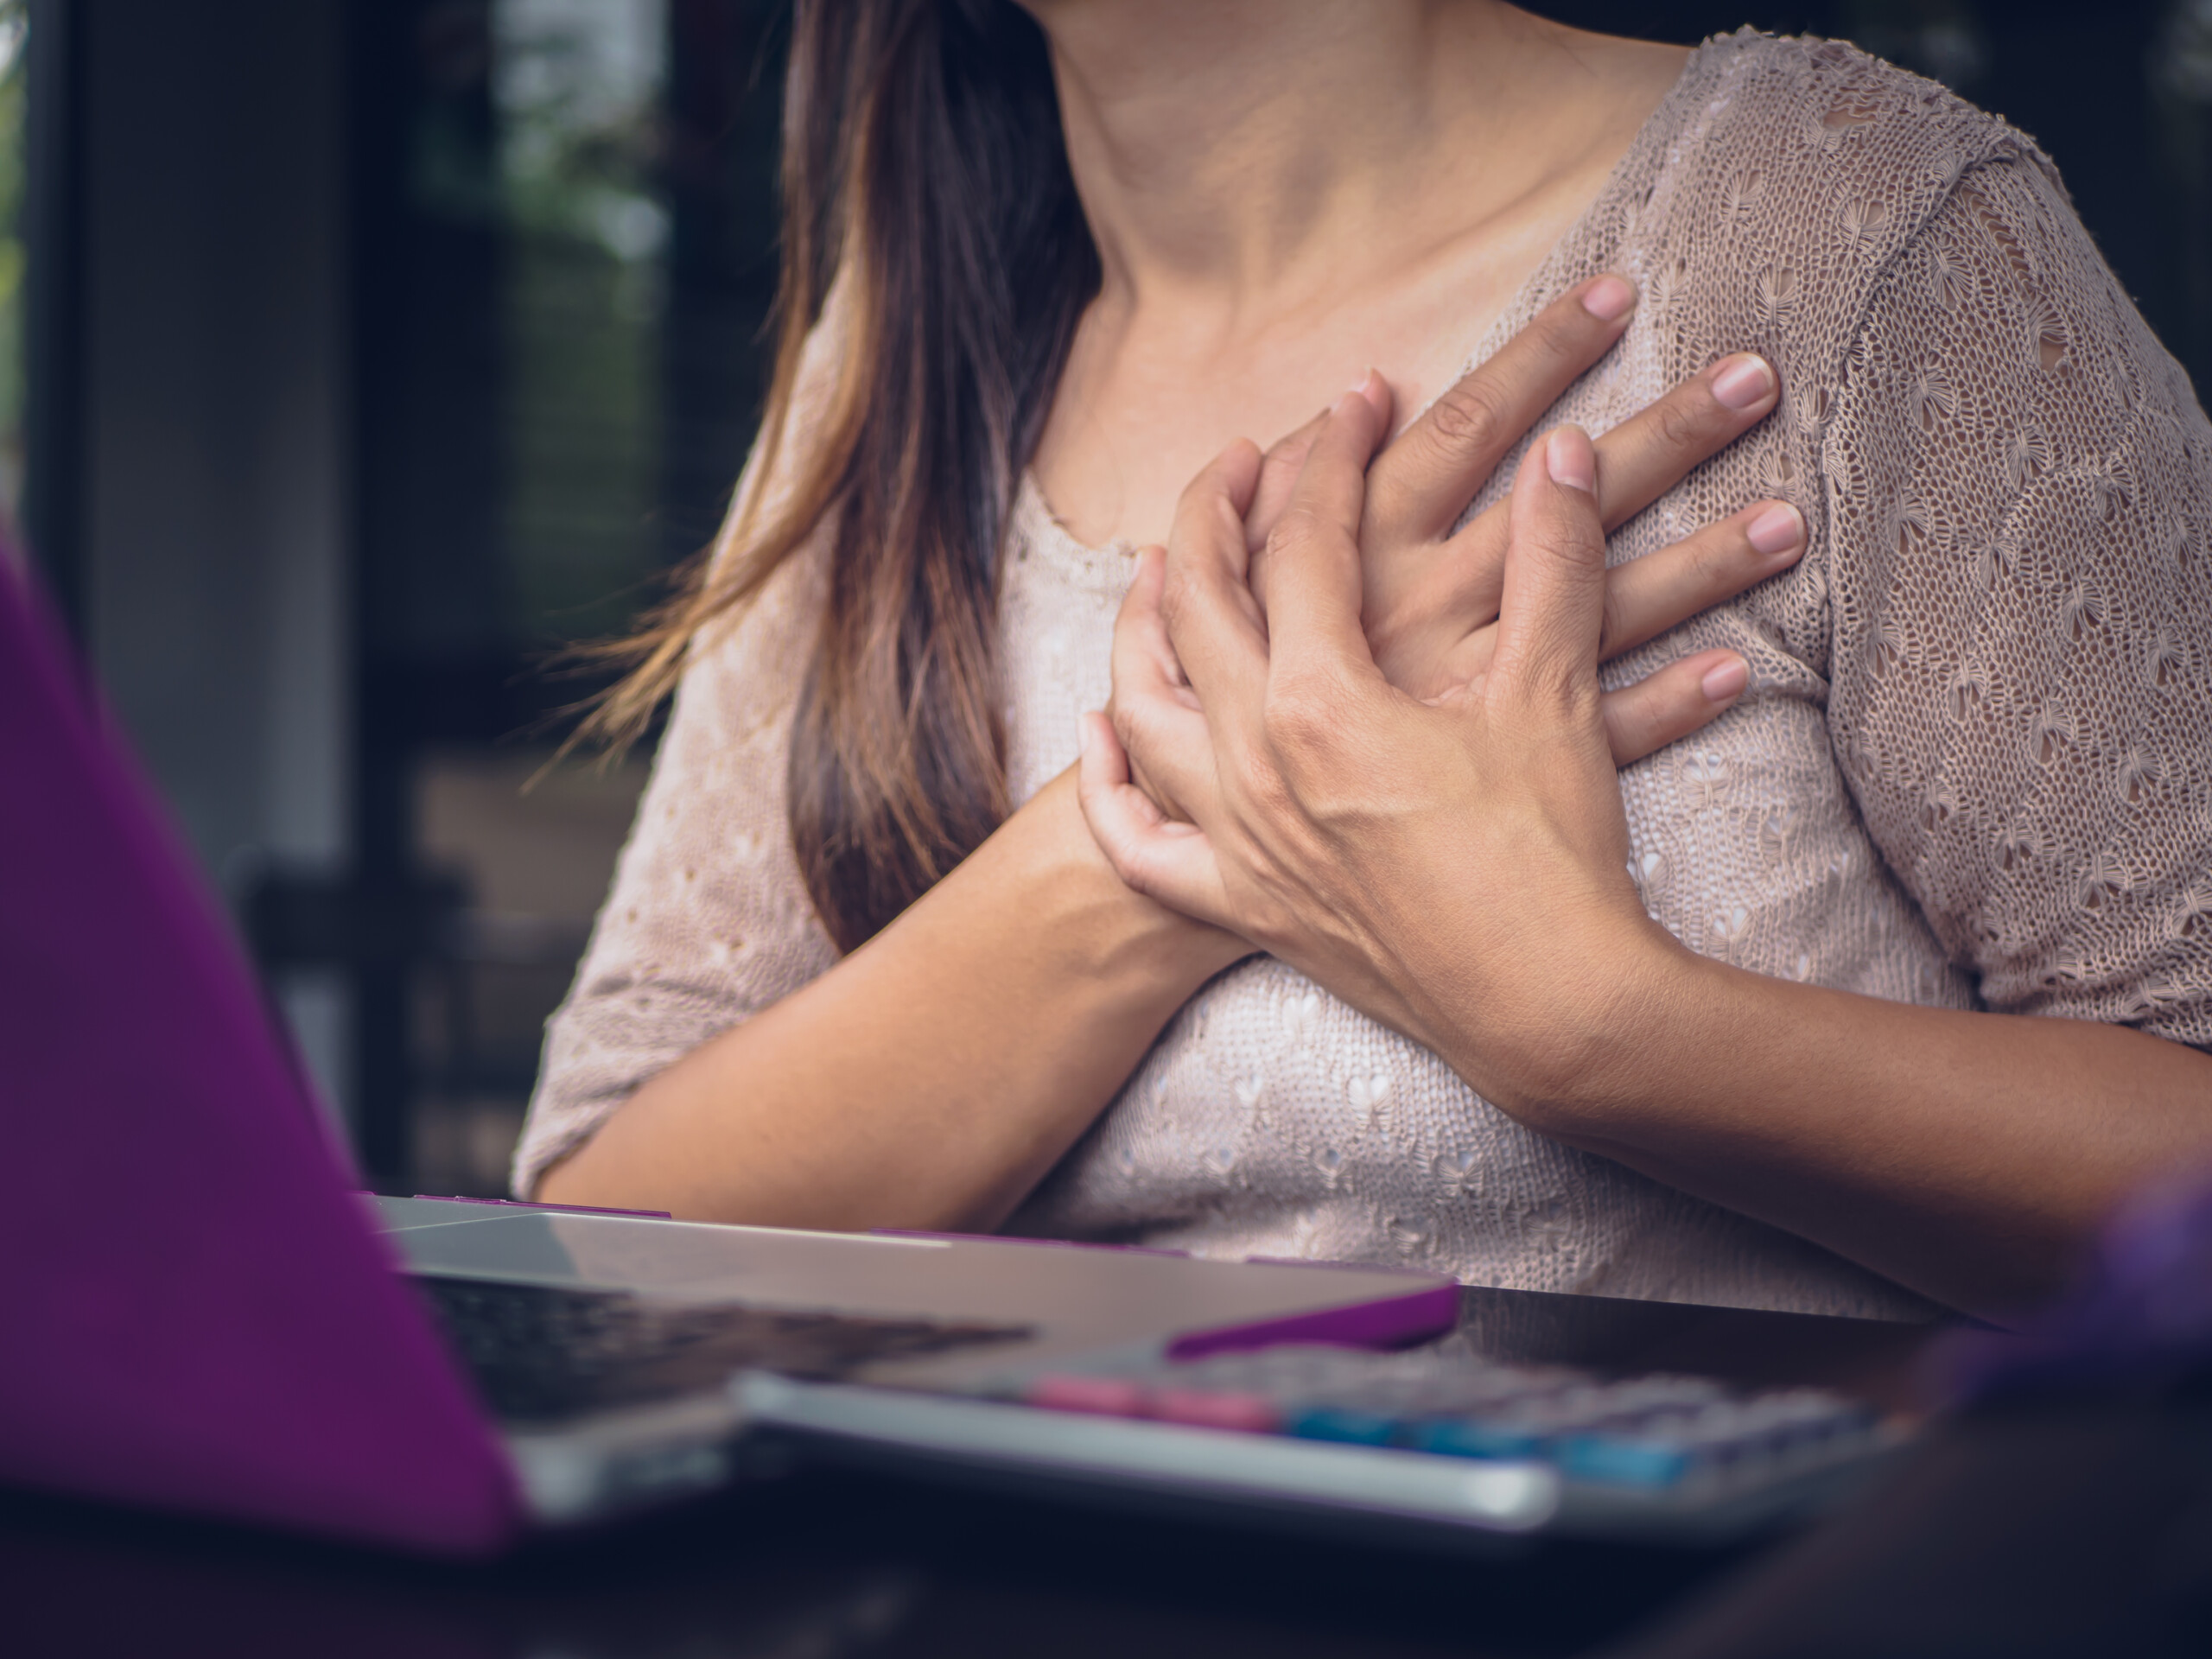 Angina in a 21-Year-Old: Could Be a Heart Problem?